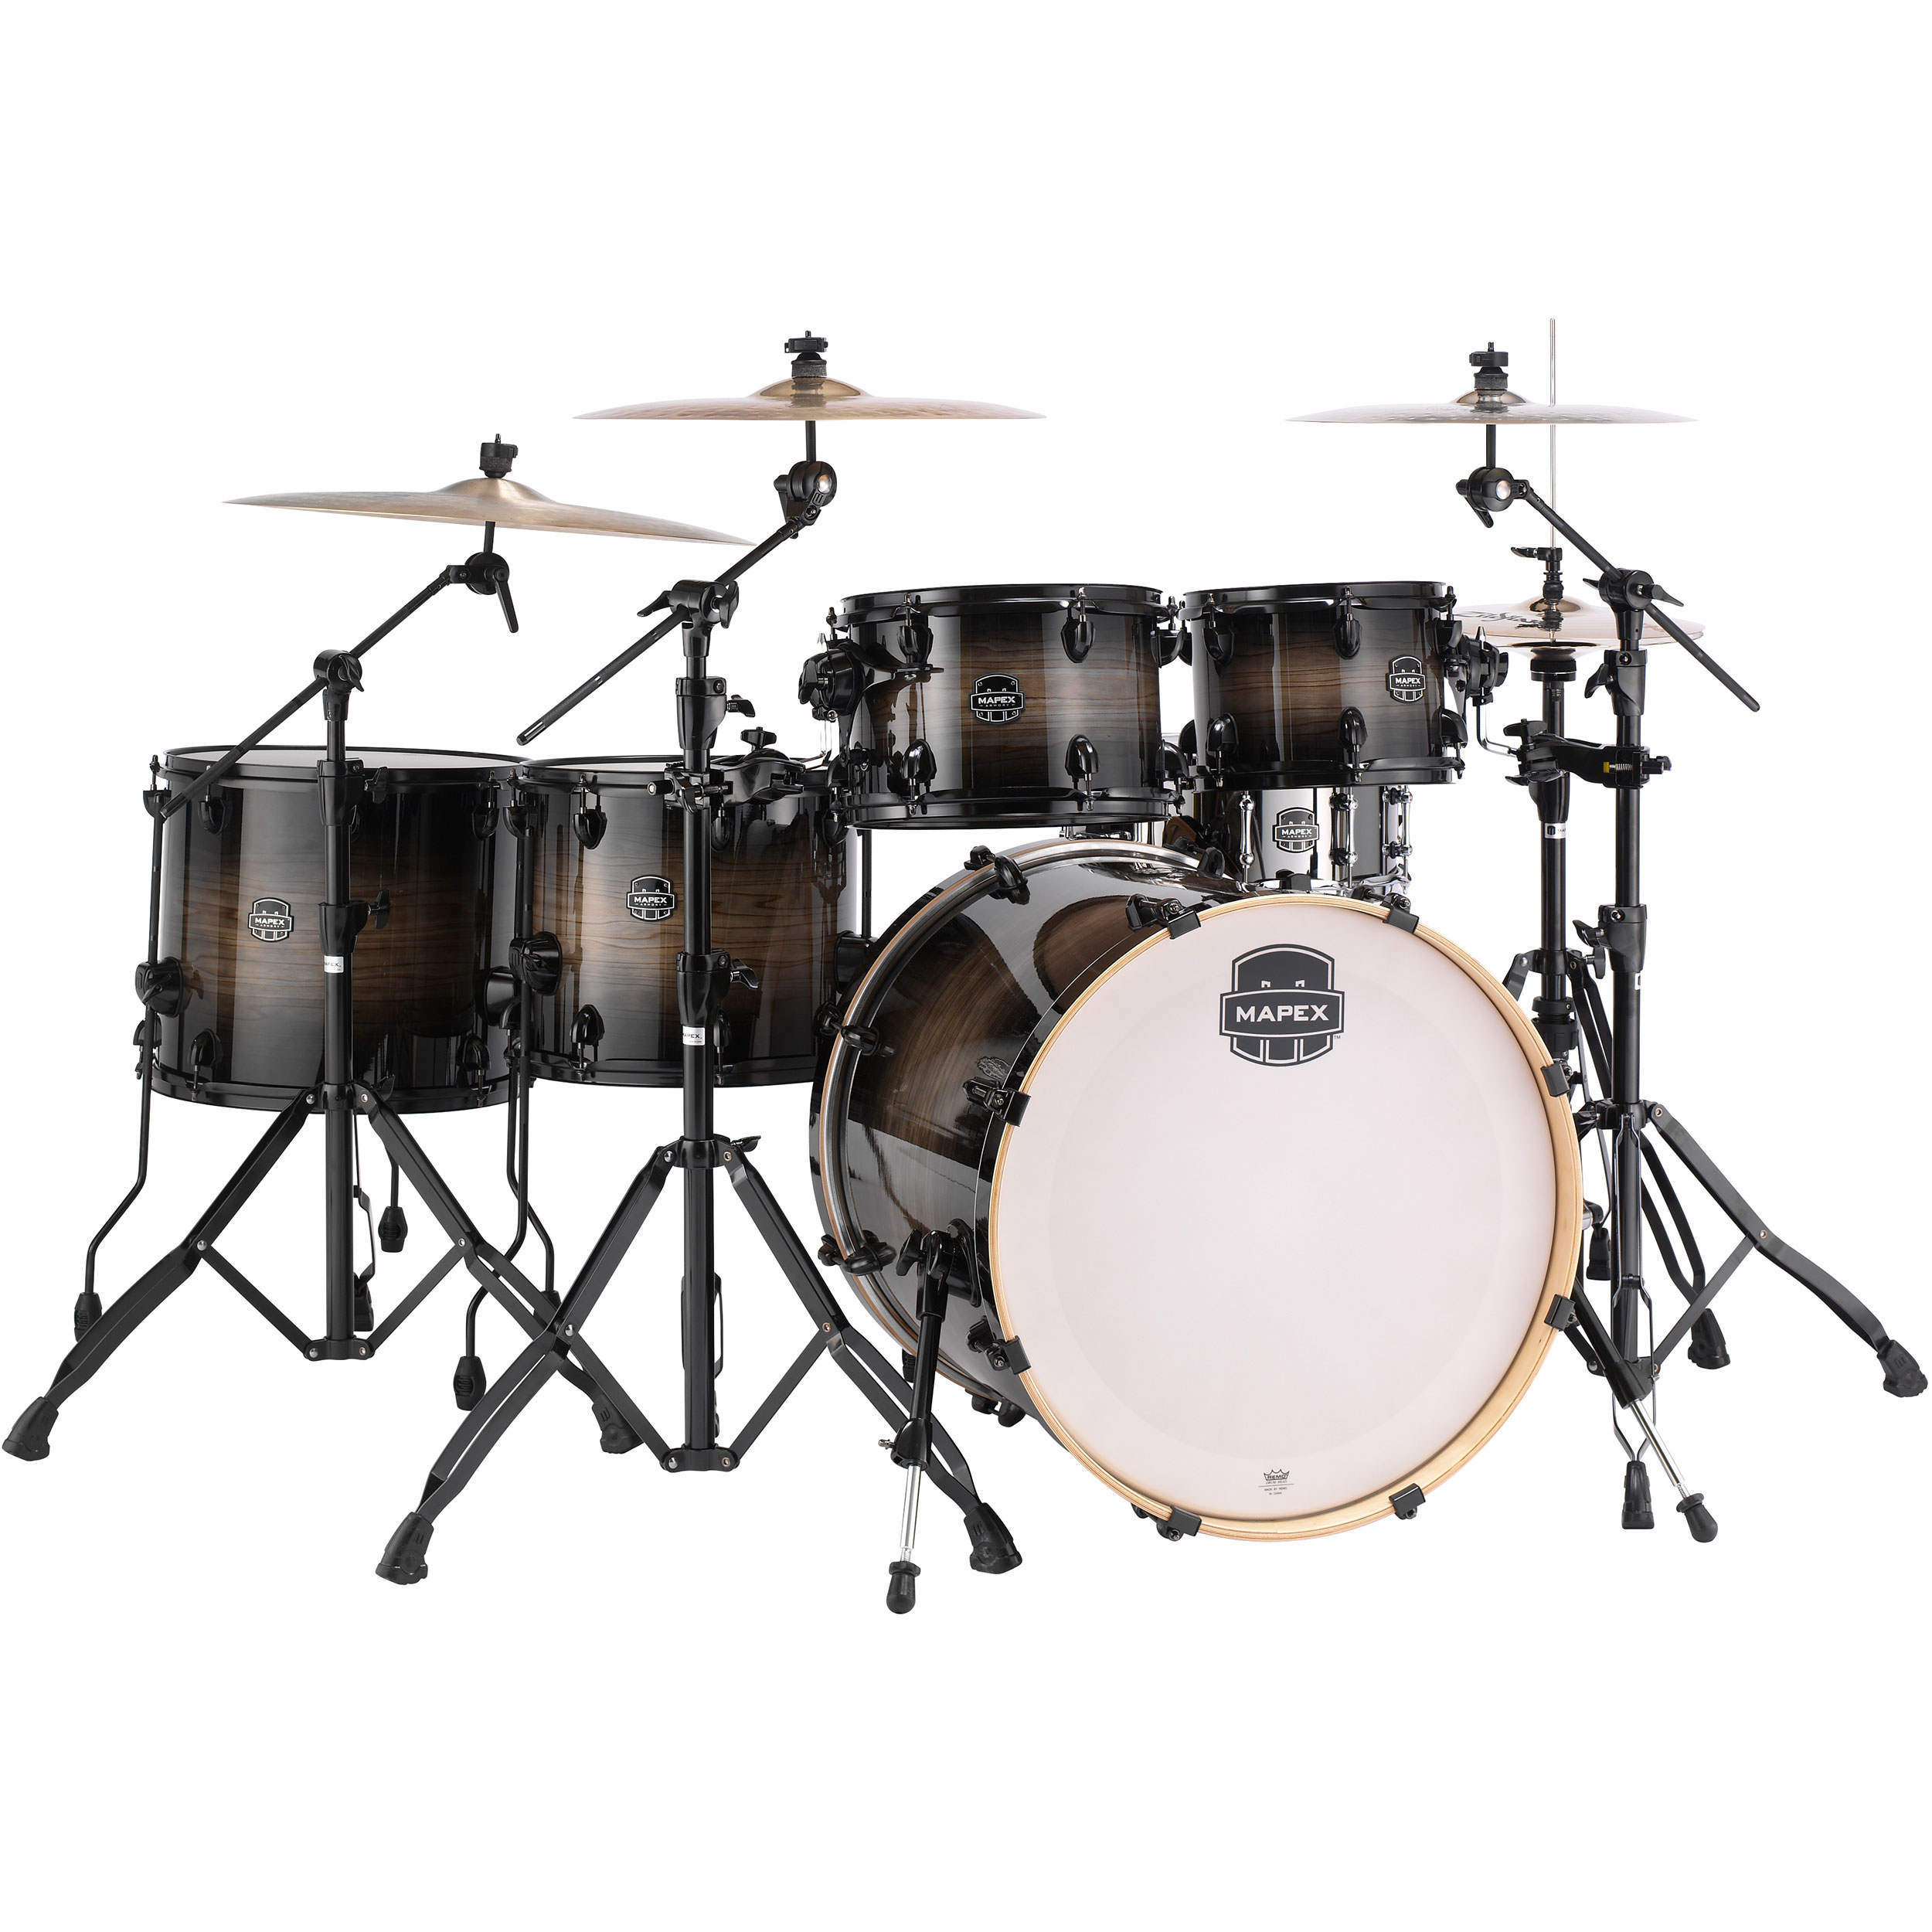 Alternate Image For Mapex Armory 6 Piece Studioease Fast Drum Set Shell Pack 22